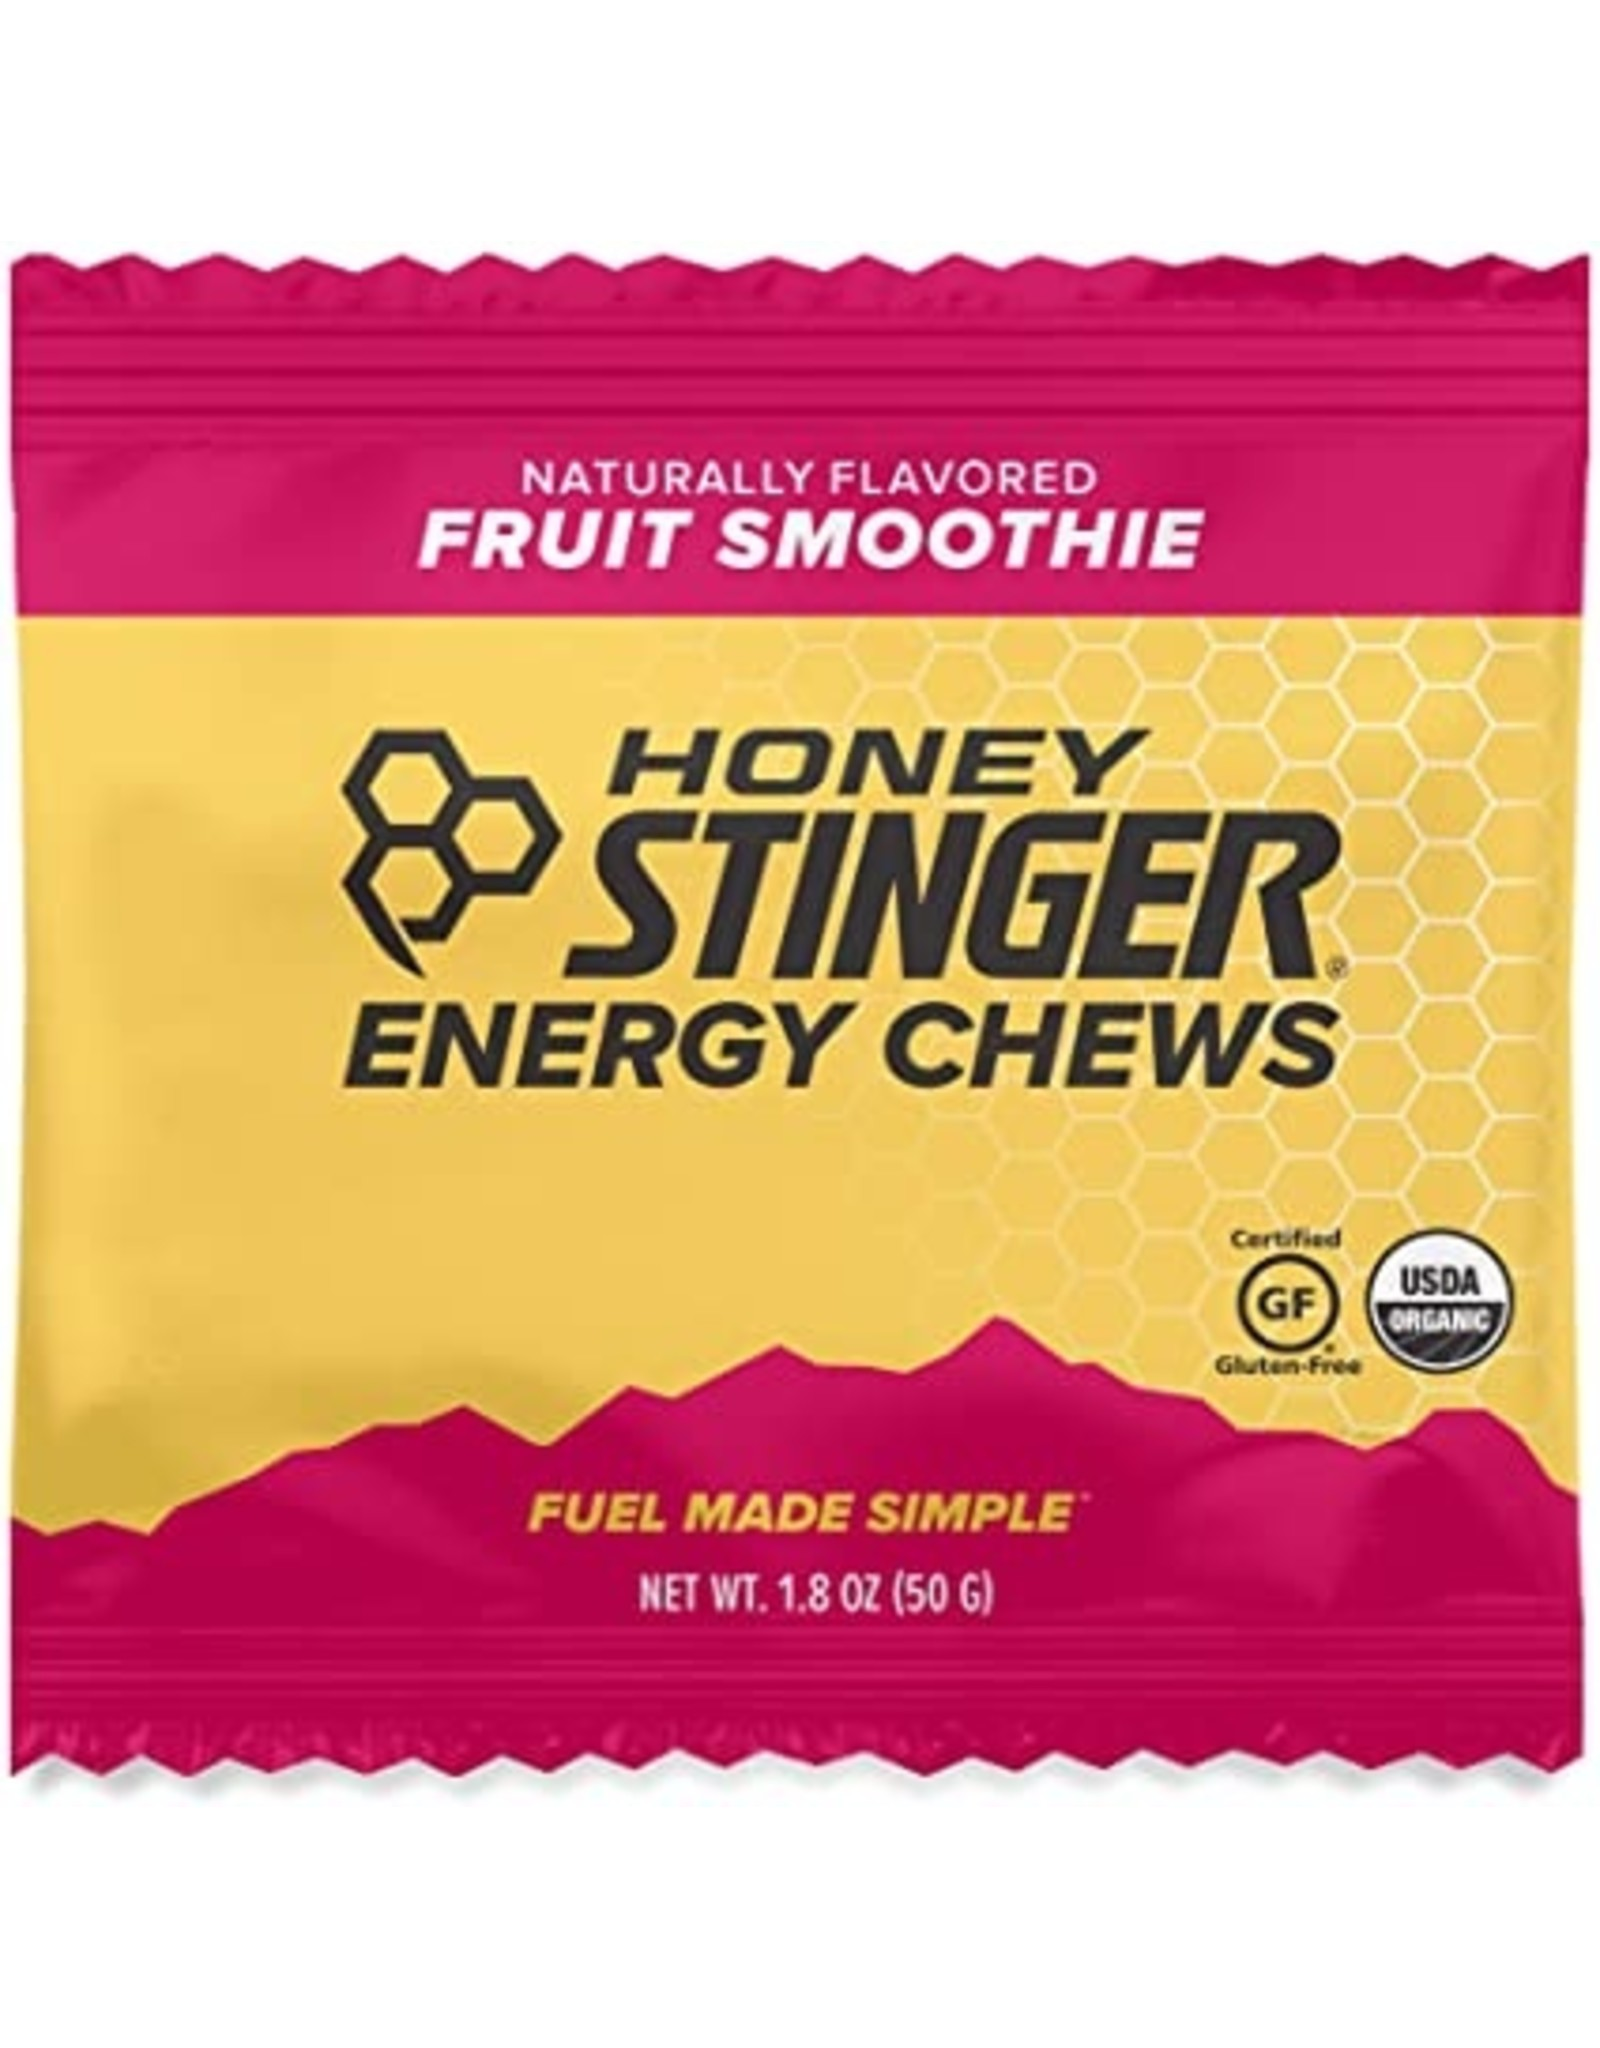 Honey Stinger Honey Stinger Organic Energy Chews Fruit Smoothie